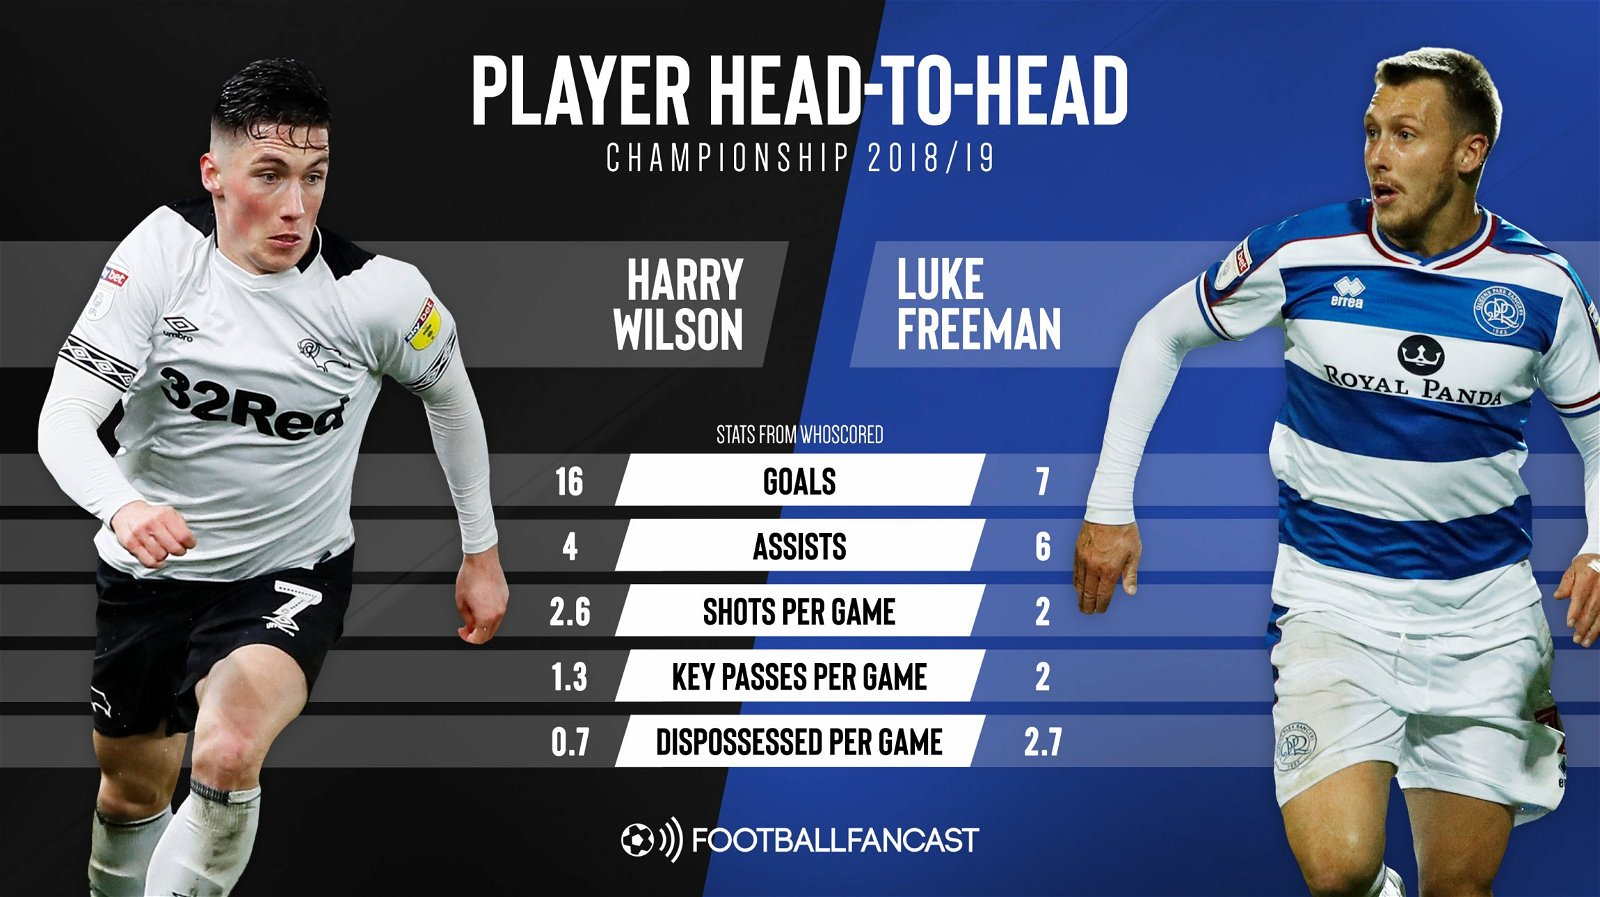 Harry Wilson vs Luke Freeman - Why Leeds should prioritise signing 22 y/o over consistently proven Championship star - opinion